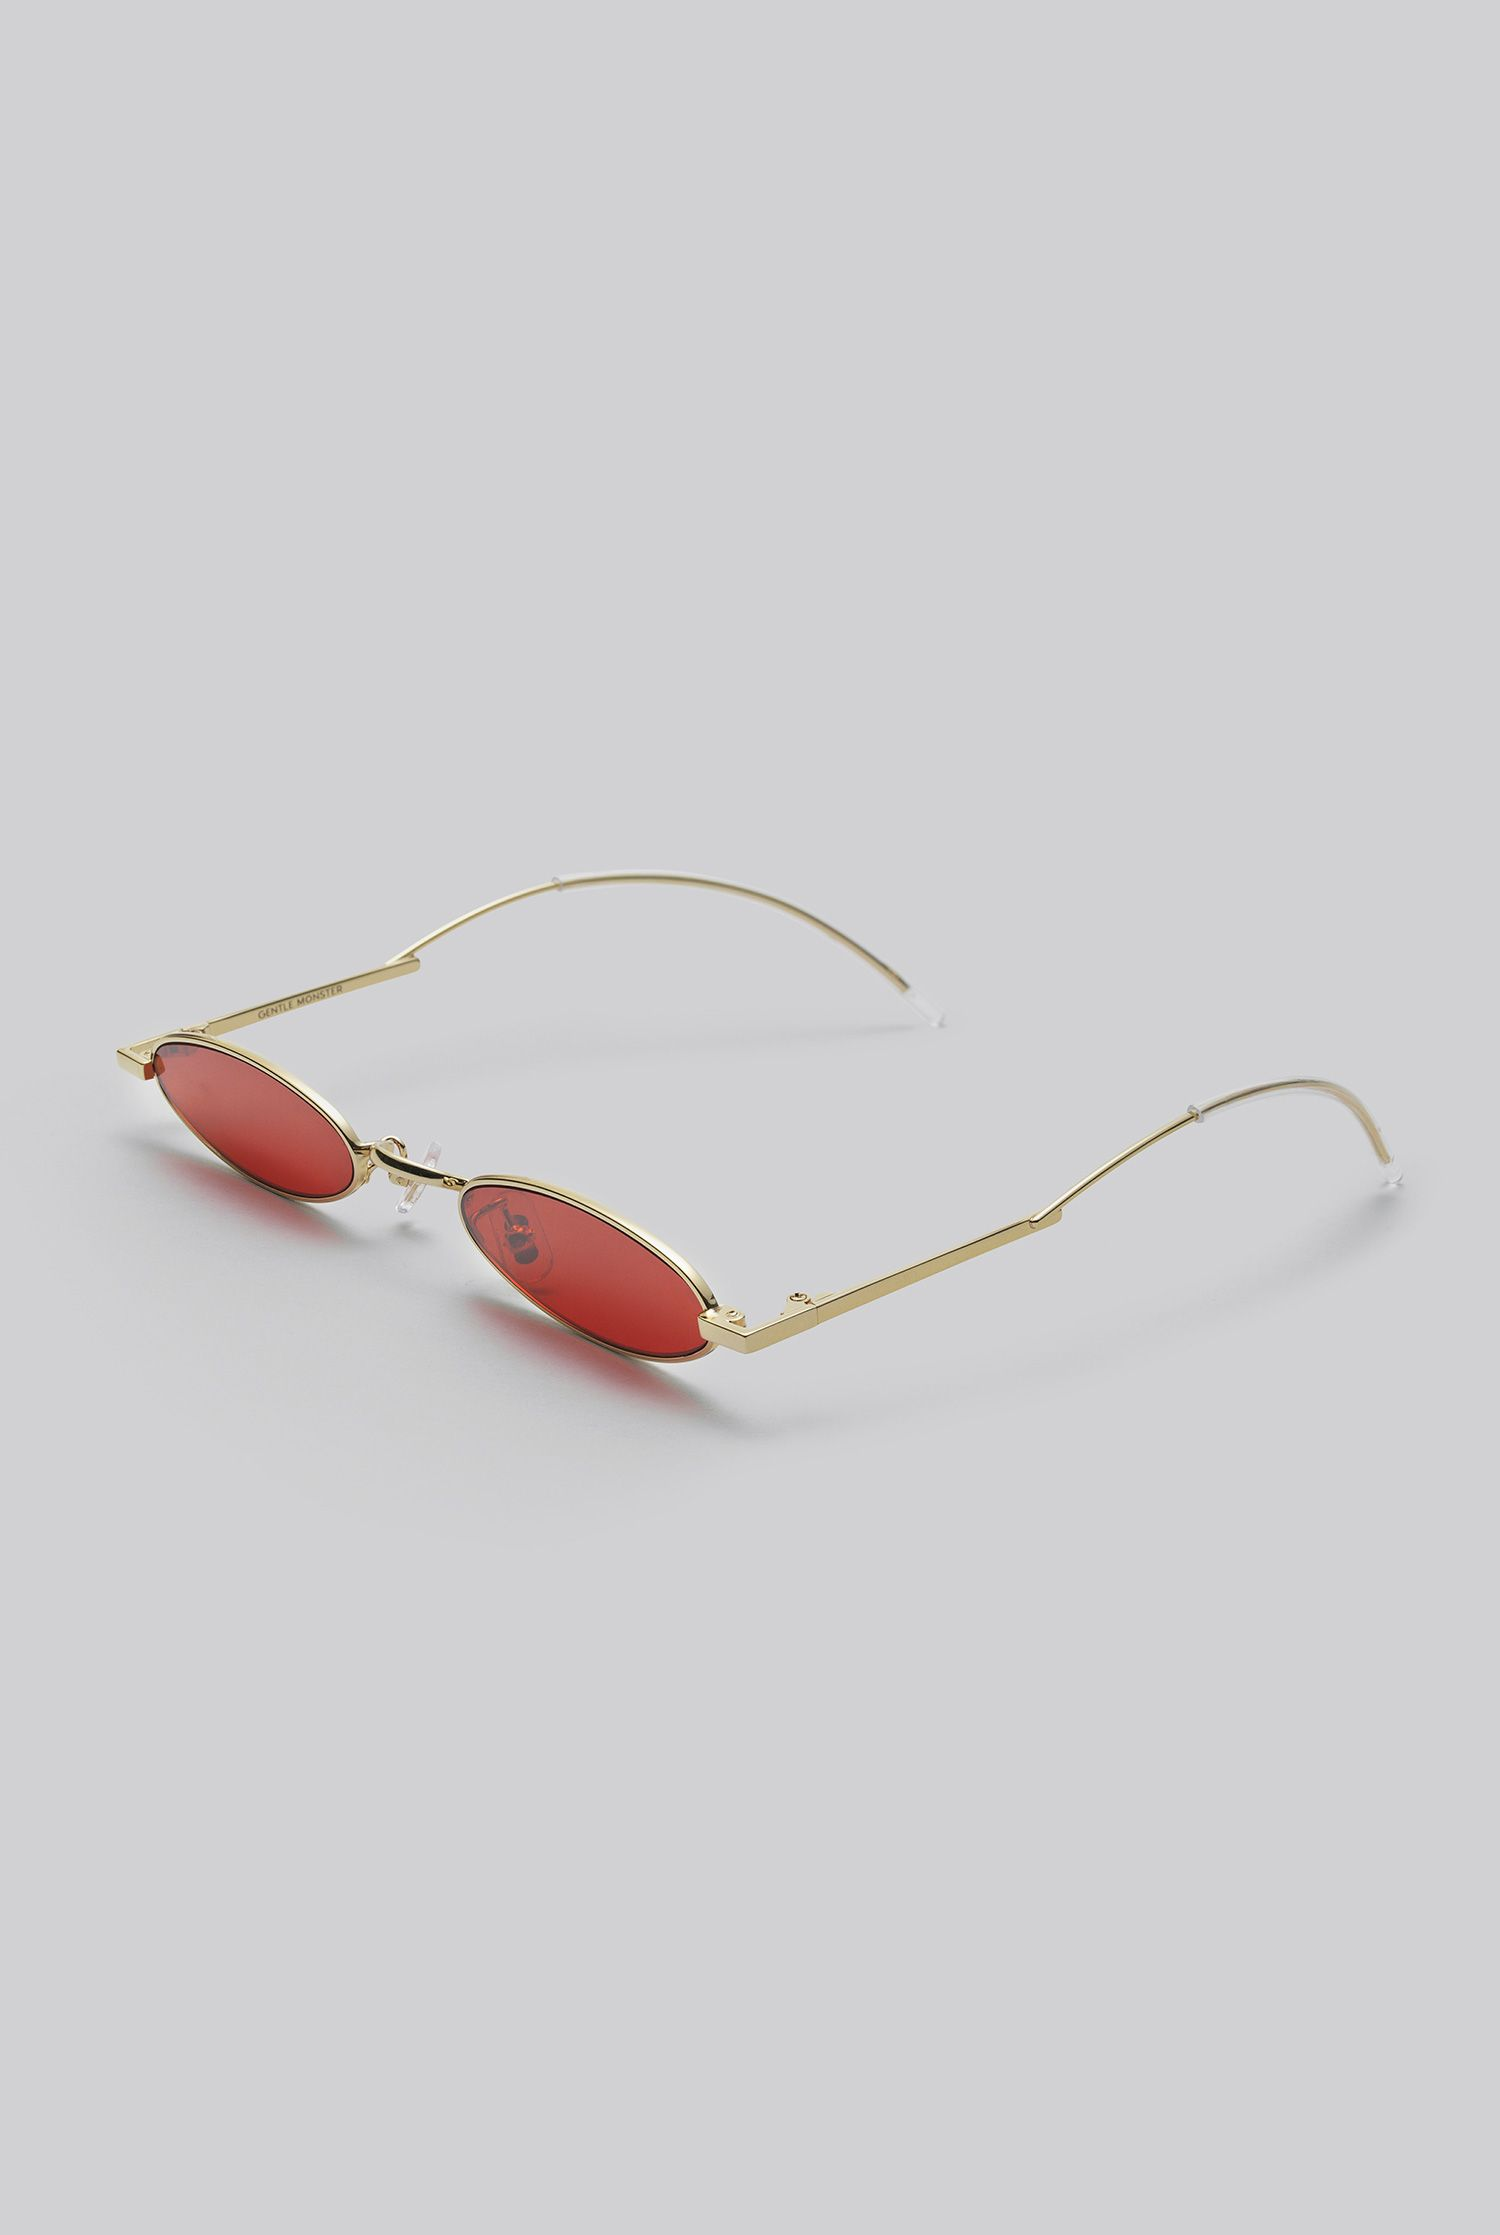 a3859a2d9c3a GENTLE MONSTER 2018 Sunglasses VECTOR 03(RED) Stainless and monel frame in  gold